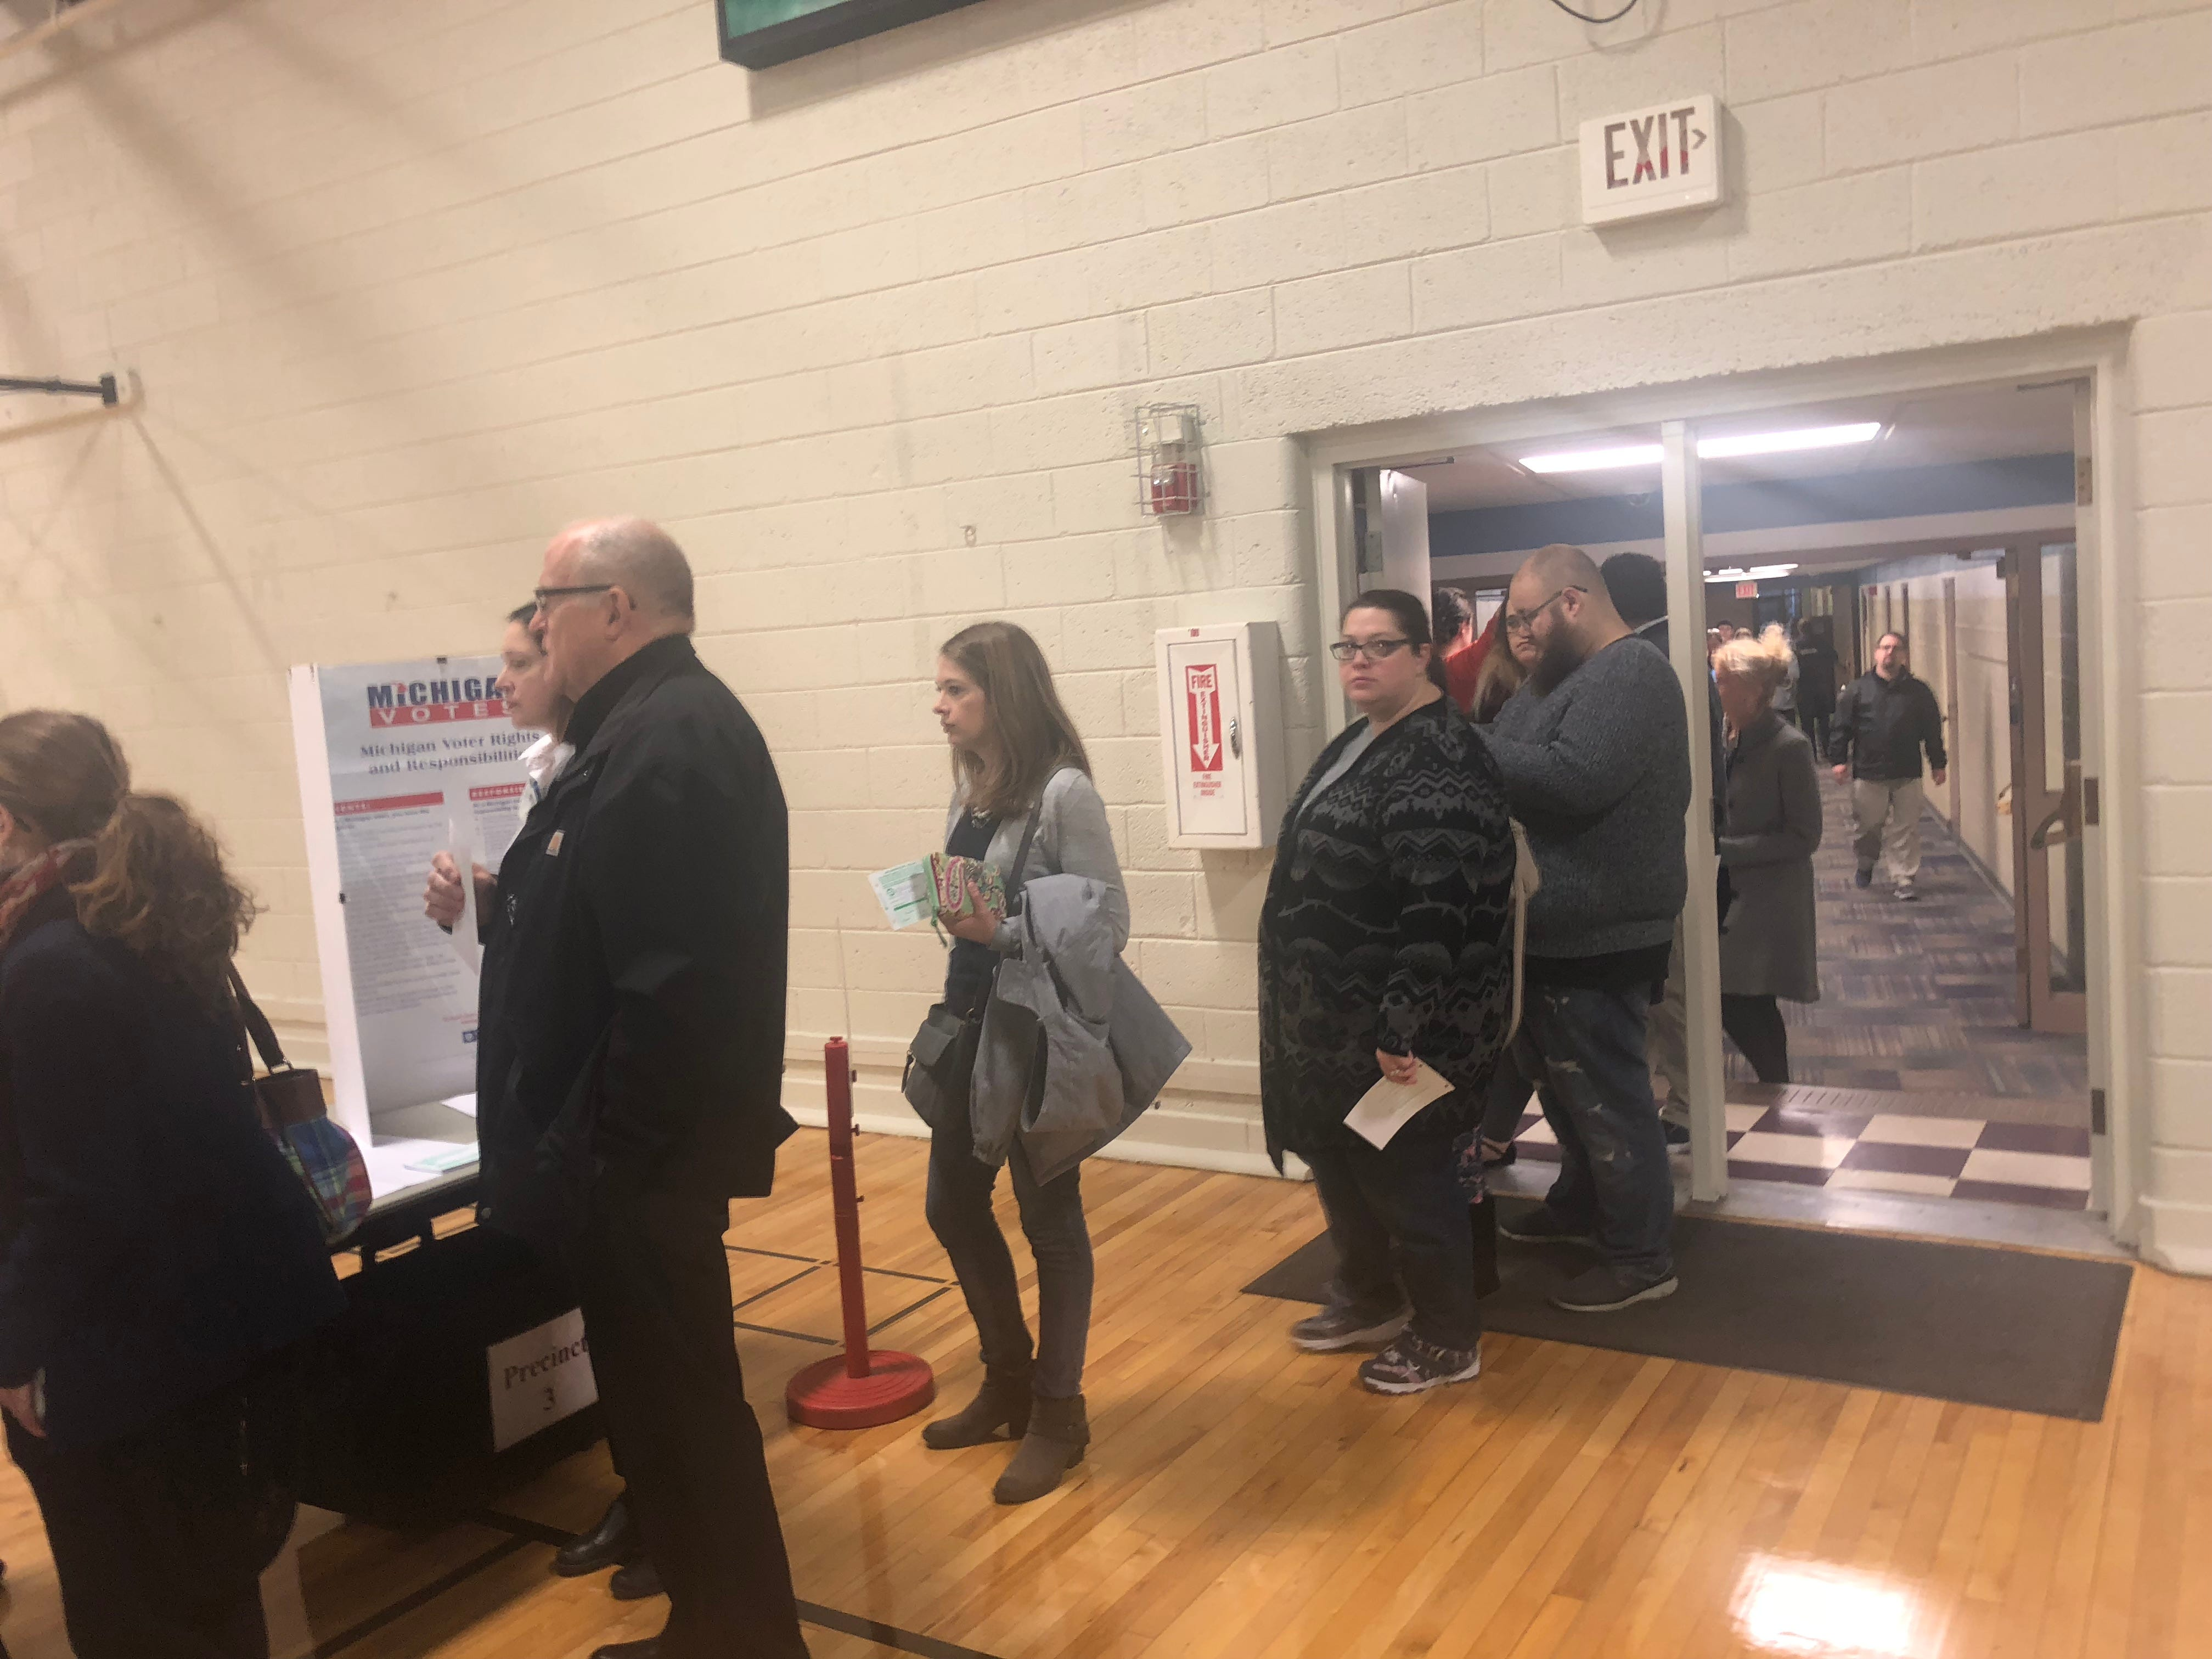 Voters wait in line at the Brighton Educational Community Center on Tuesday morning, Nov. 6, 2018.